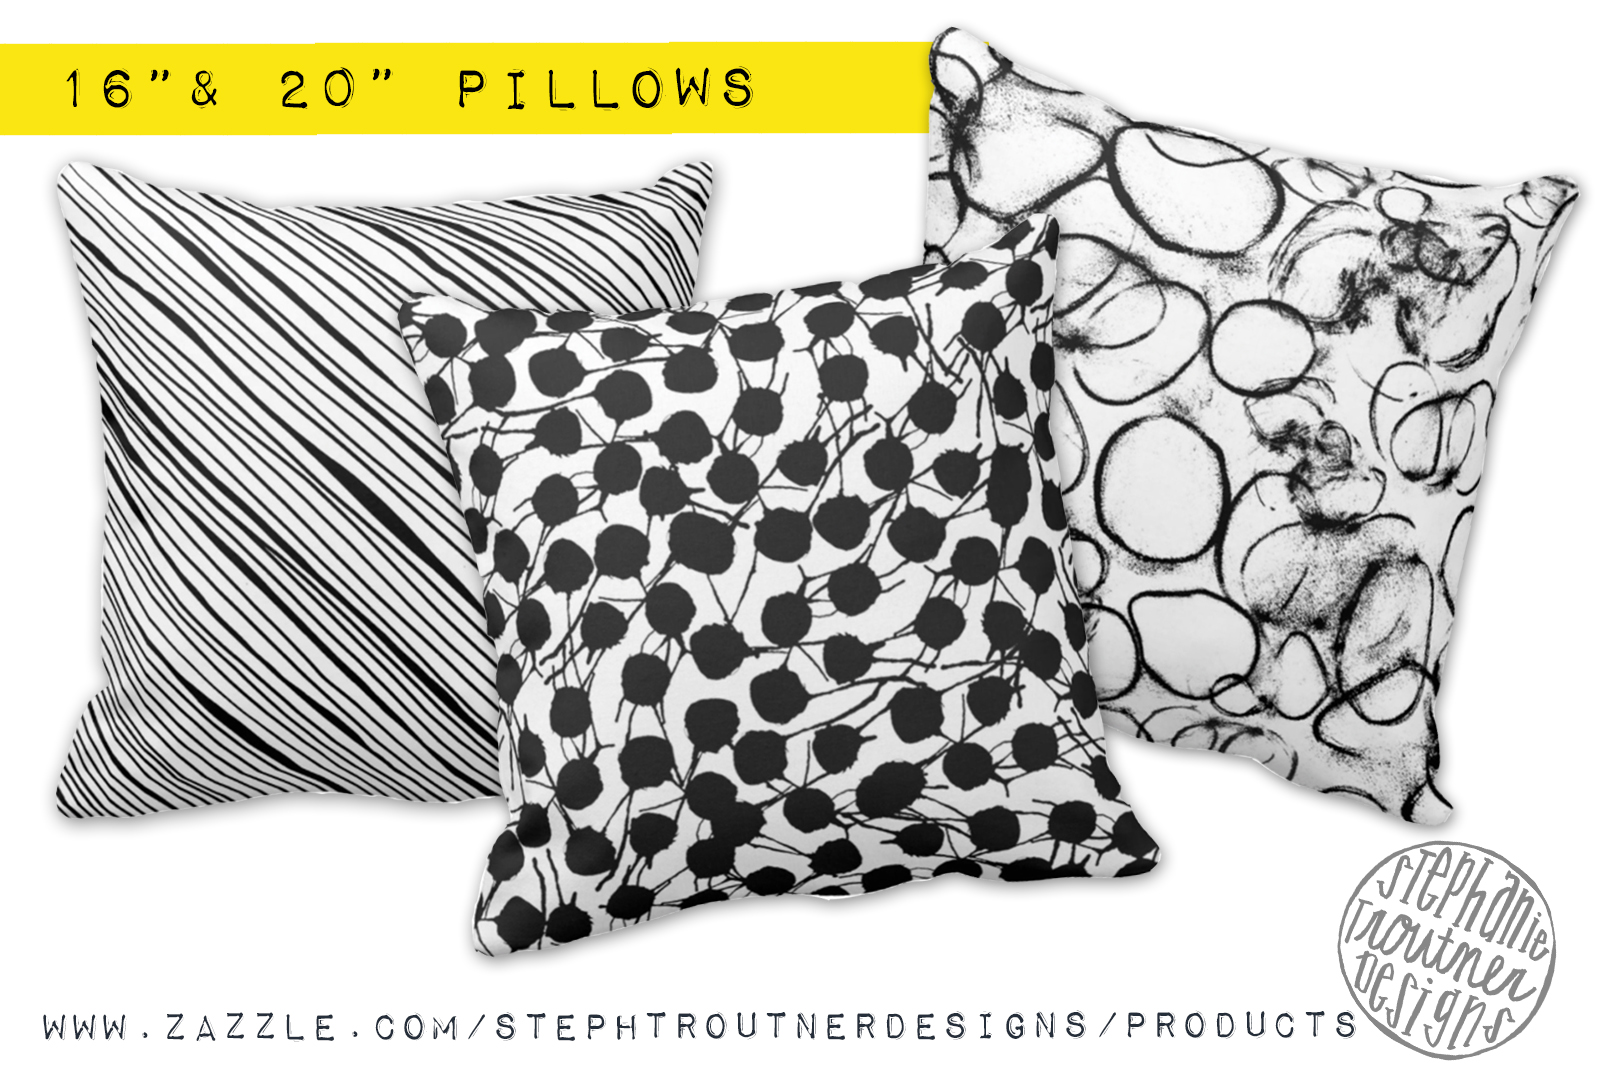 Bold Pillows in black & white